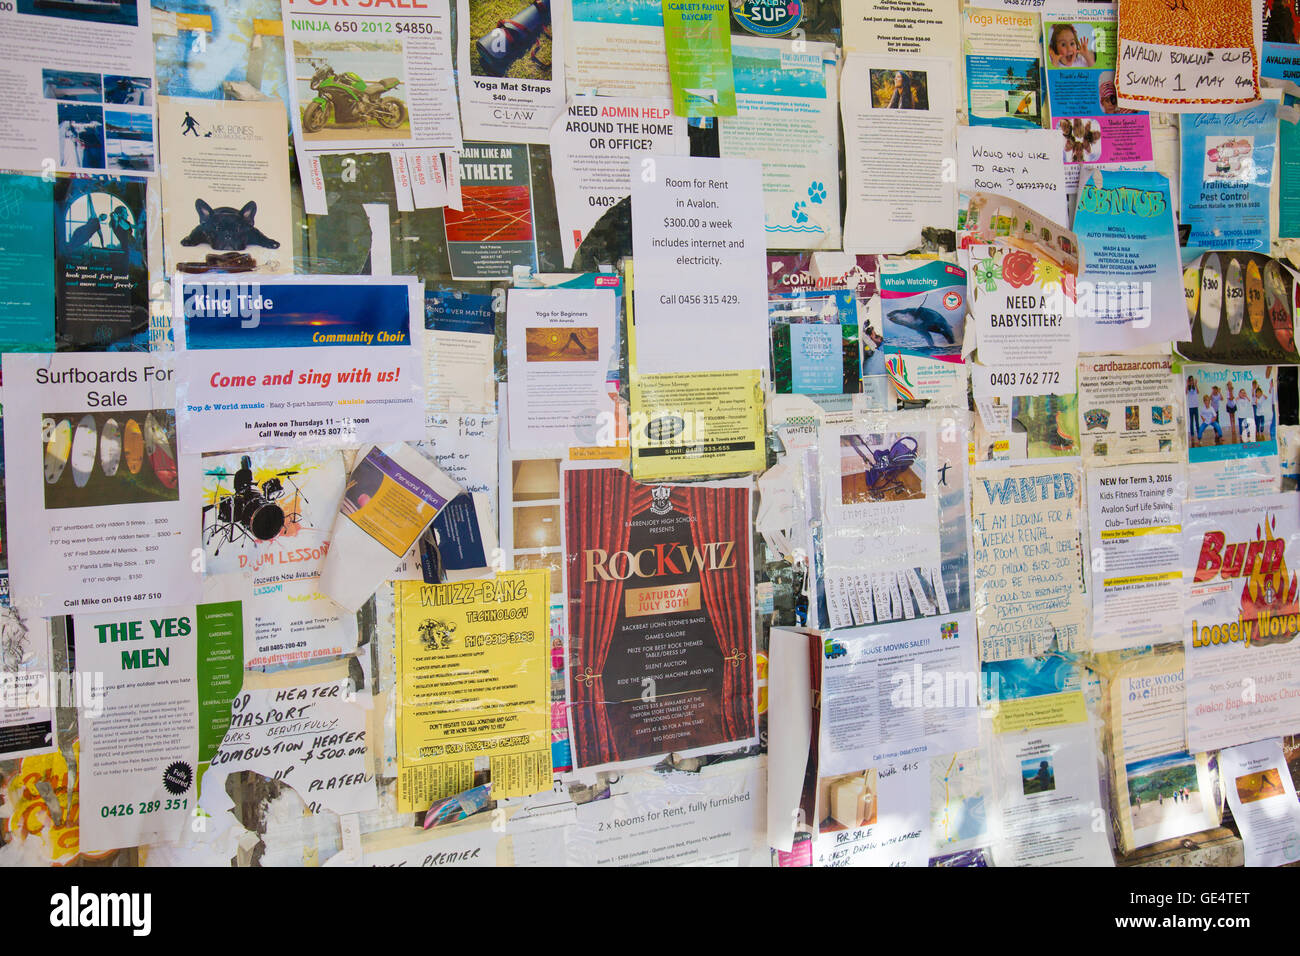 community noticeboard in Sydney with advertisements for services and sale items,australia - Stock Image